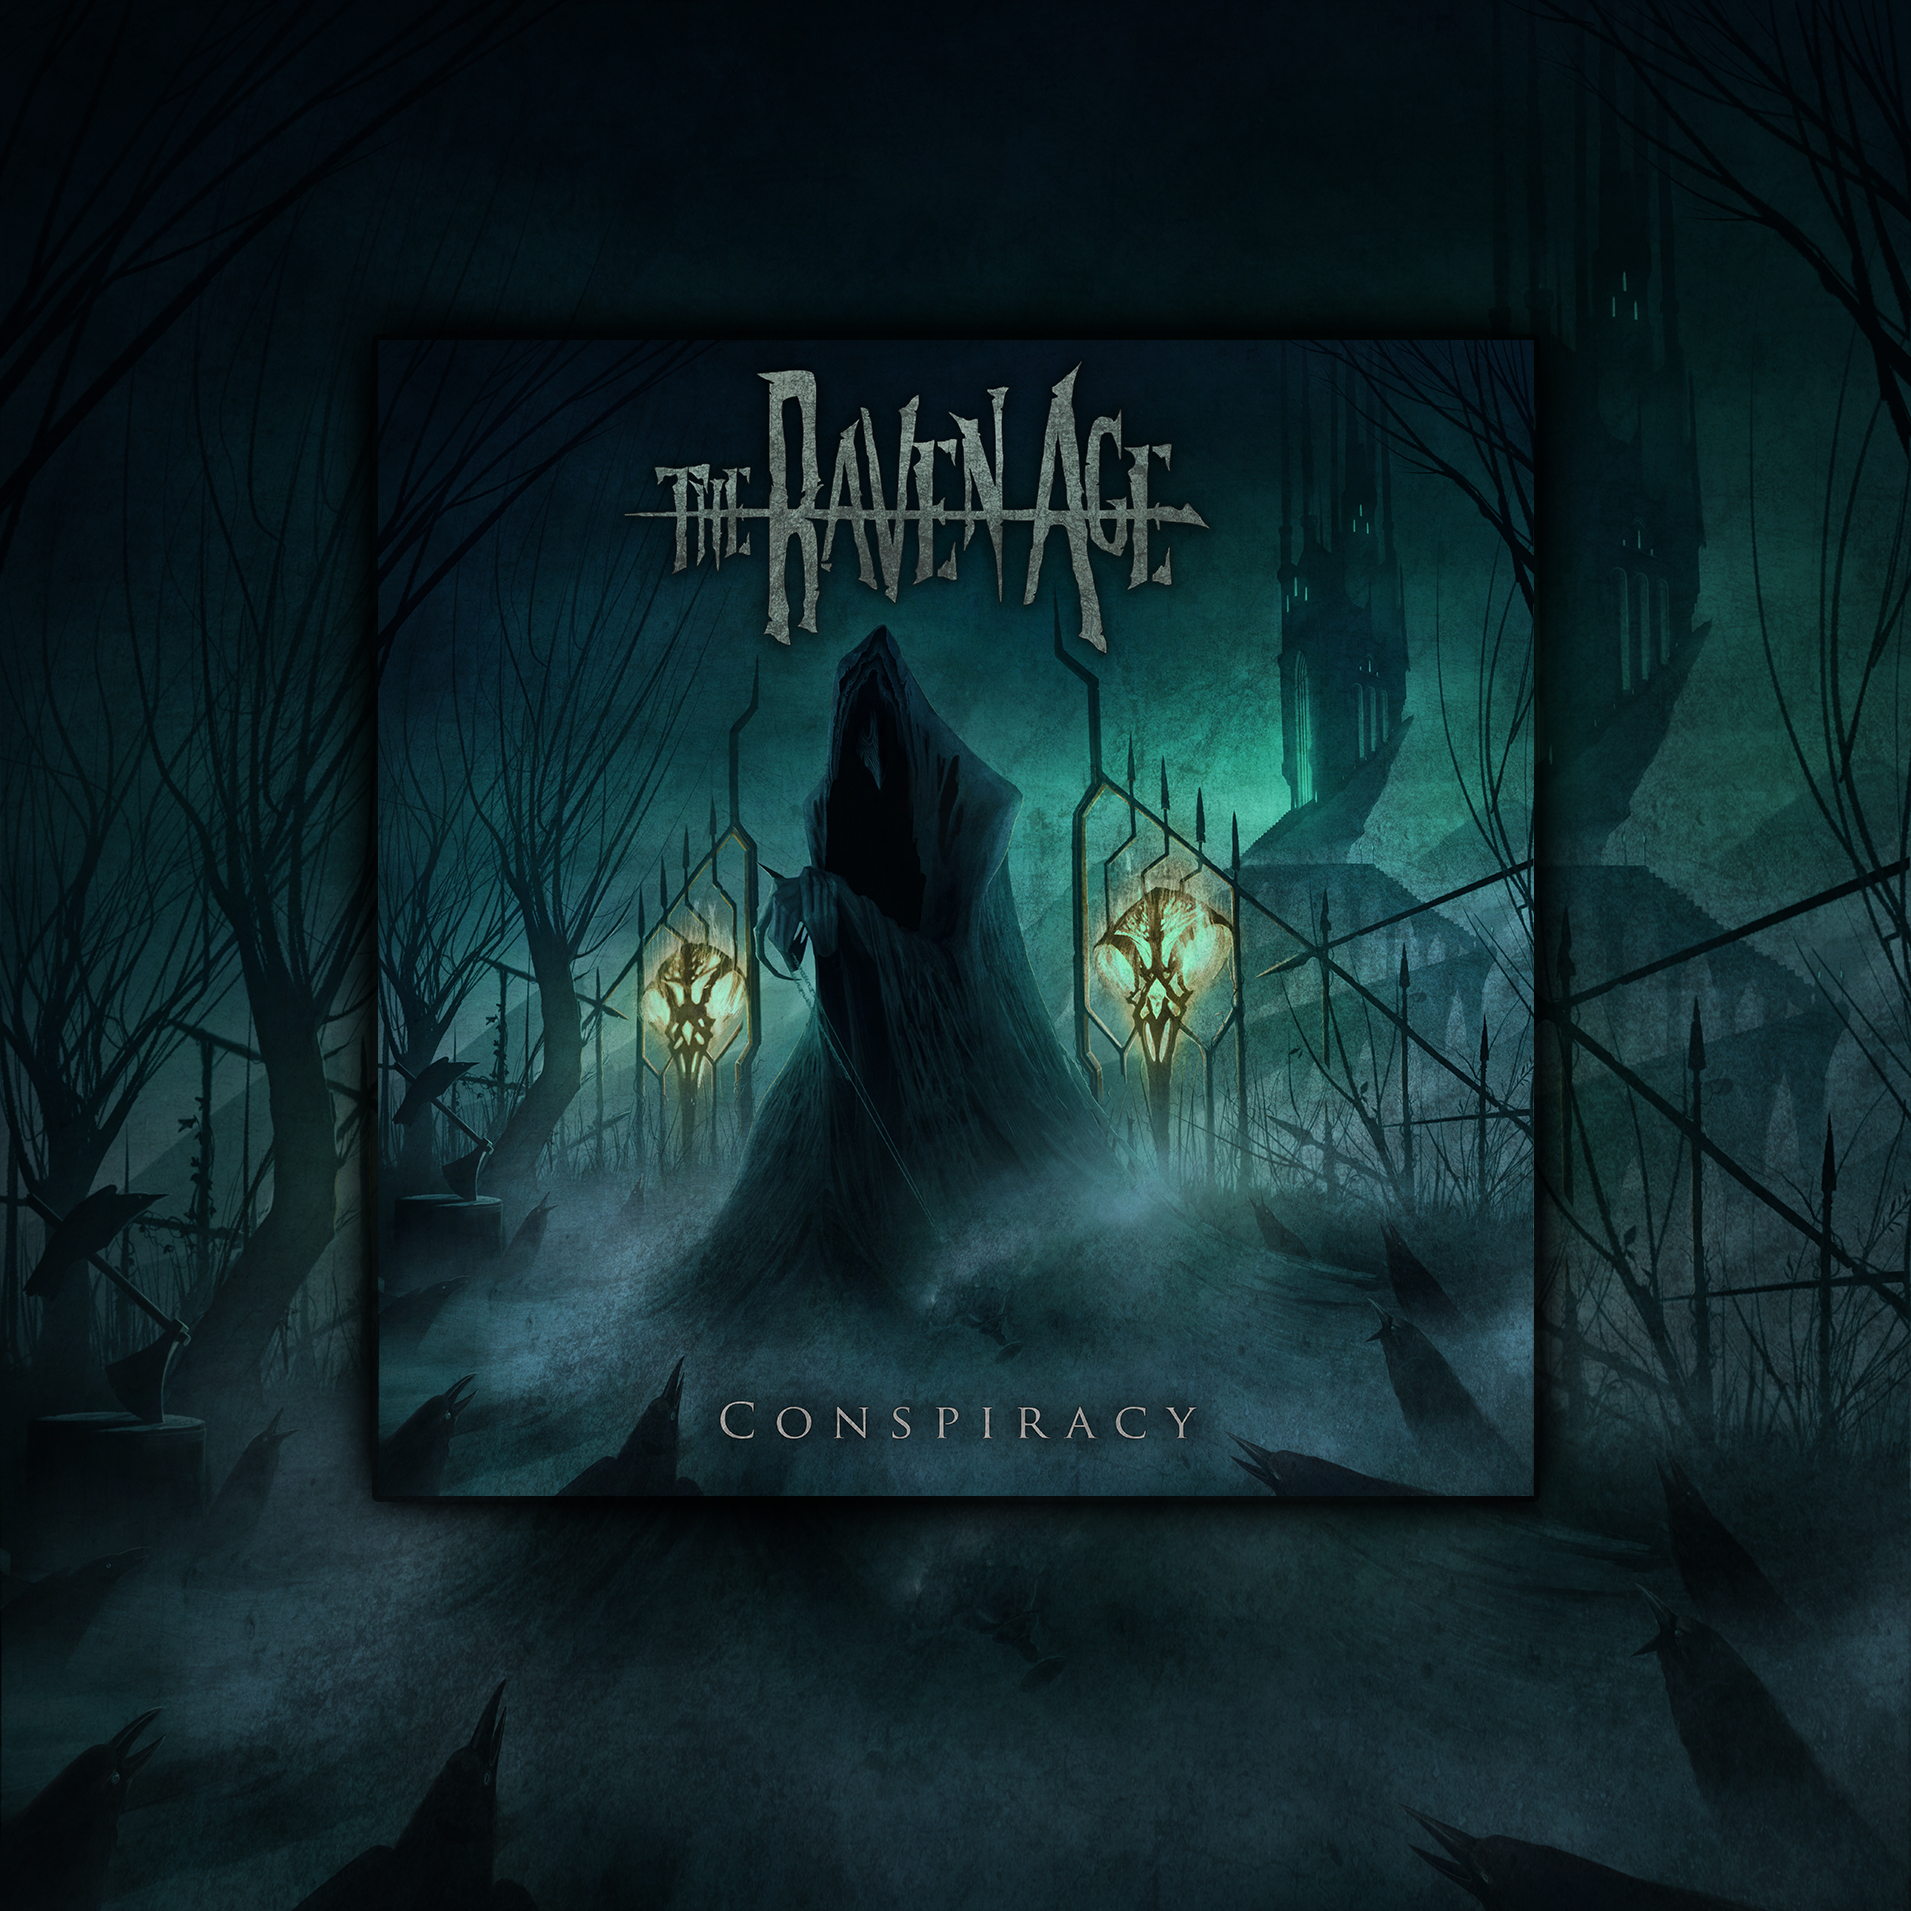 Conspiracy - Digipak Bundle - The Raven Age